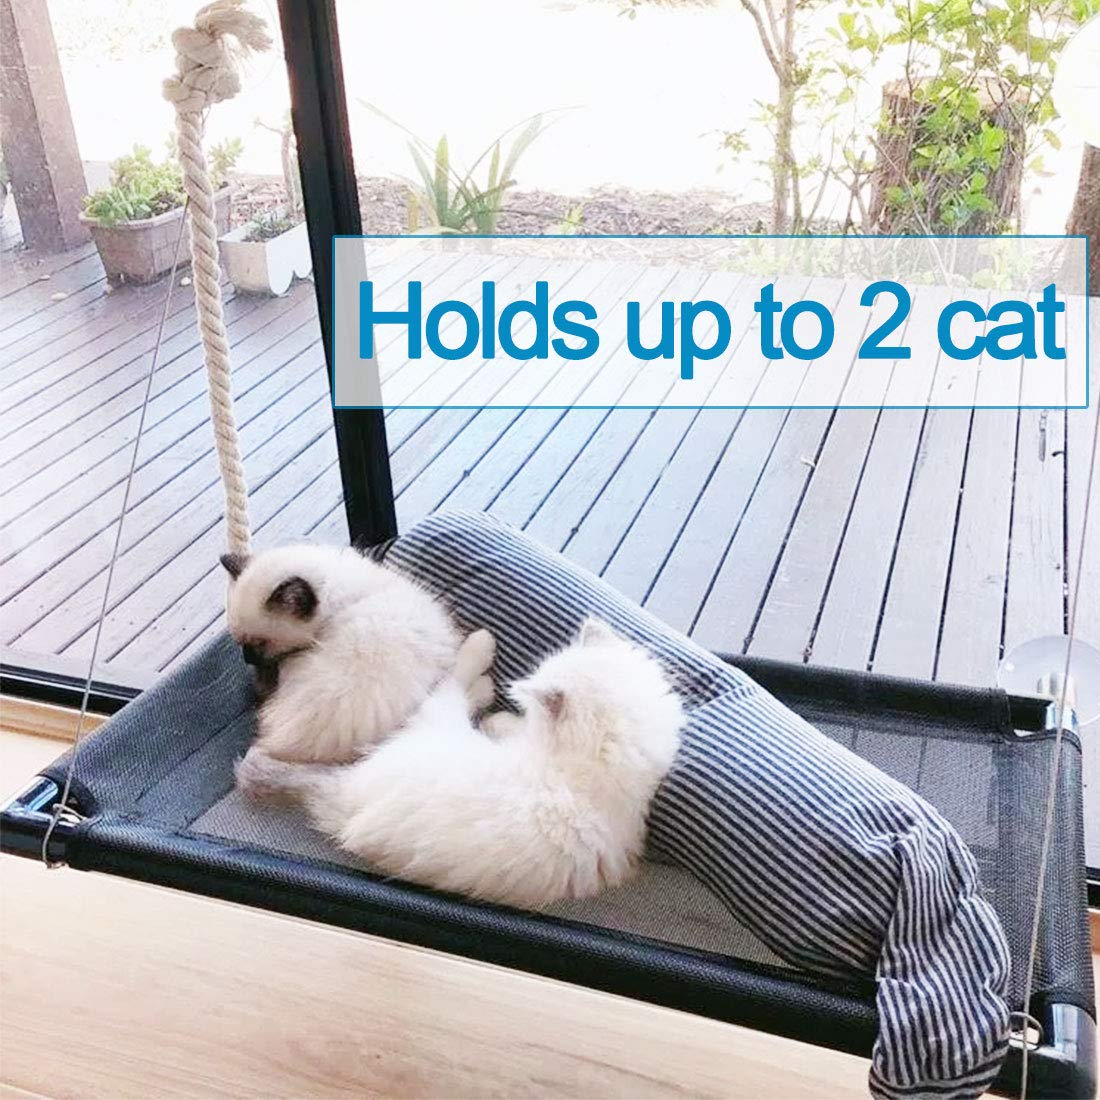 Cat Bed Window Perch Hammock Sunny Seat for Larger Cats Perches Window Mounted Cat Beds Two Kitty Window Seat Animal Pet Kitten Cot Beds Heavy Duty 4 Suction Cups Holds Up to 60lbs by Camlinbo